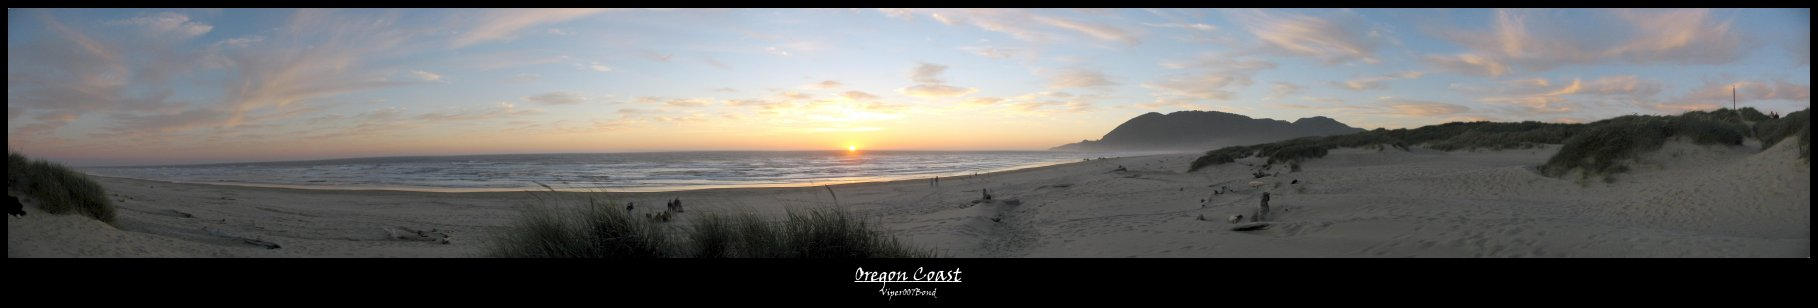 Oregon Coast by viper007bond